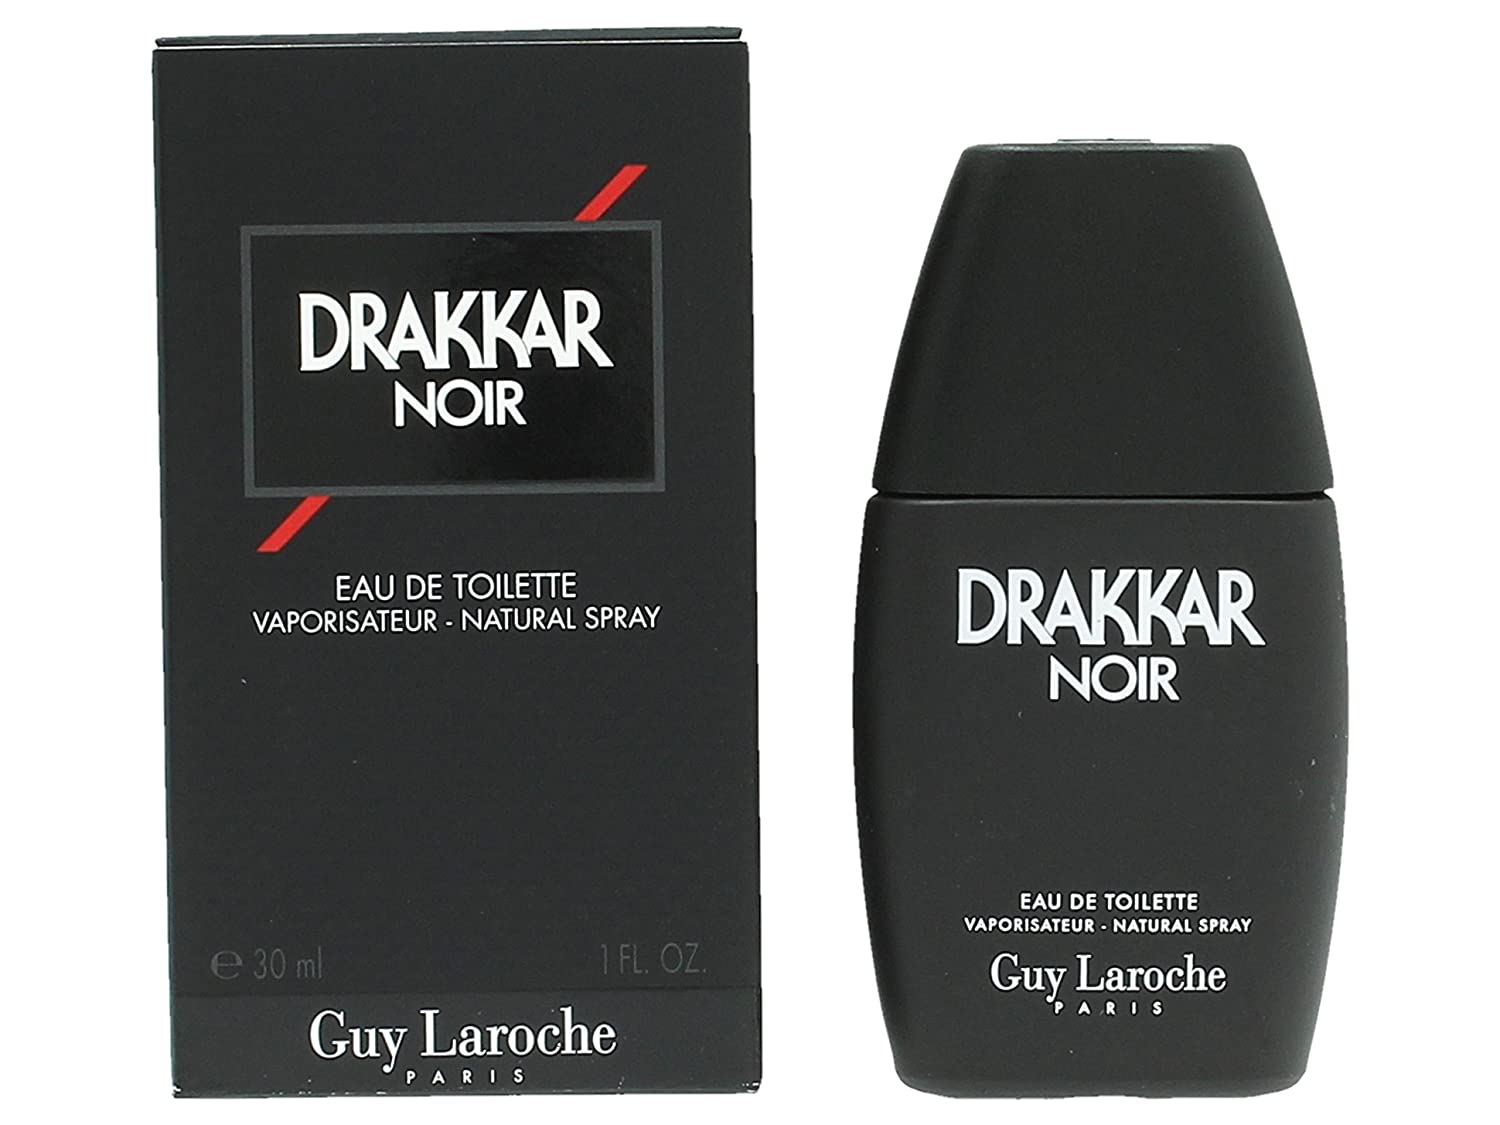 Guy Laroche Drakkar Noir Eau De Toilette Spray 30 Milliliter Amazon Parfum Zara For Him Silver Collection Man Beauty